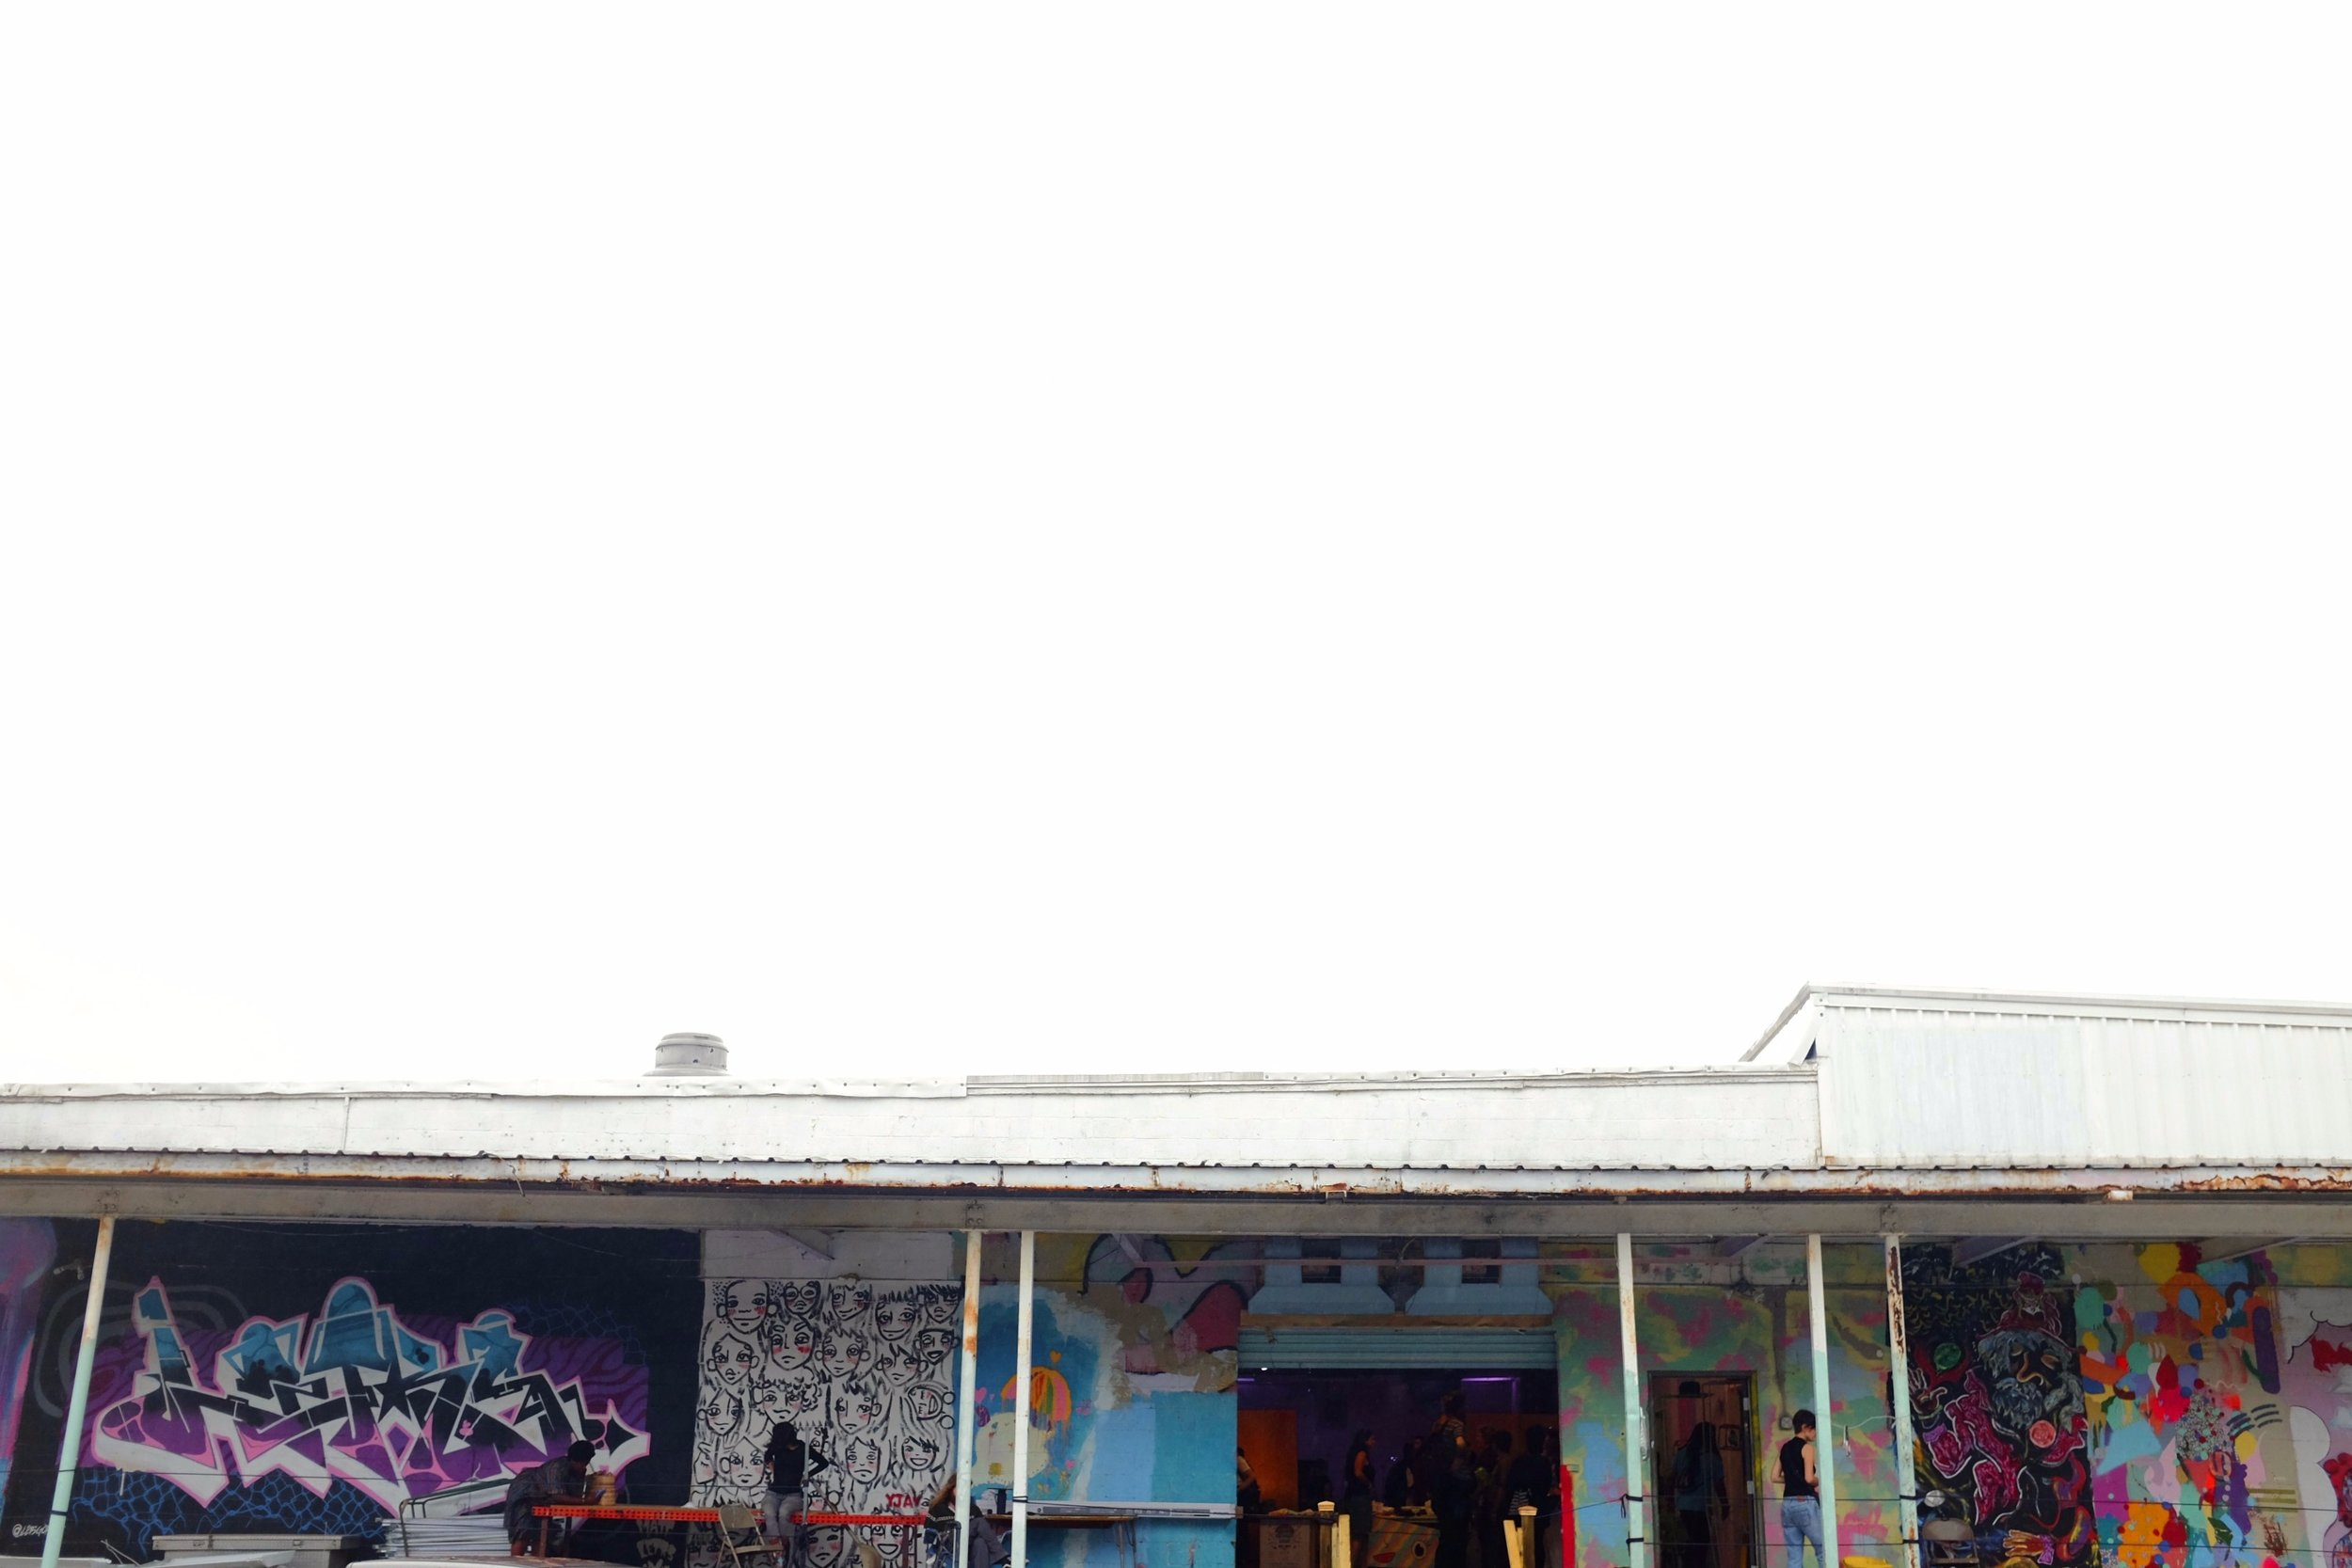 The Bakery, a creative arts complex in Oakland City, sits at  825 Warner Street in southwest Atlanta.